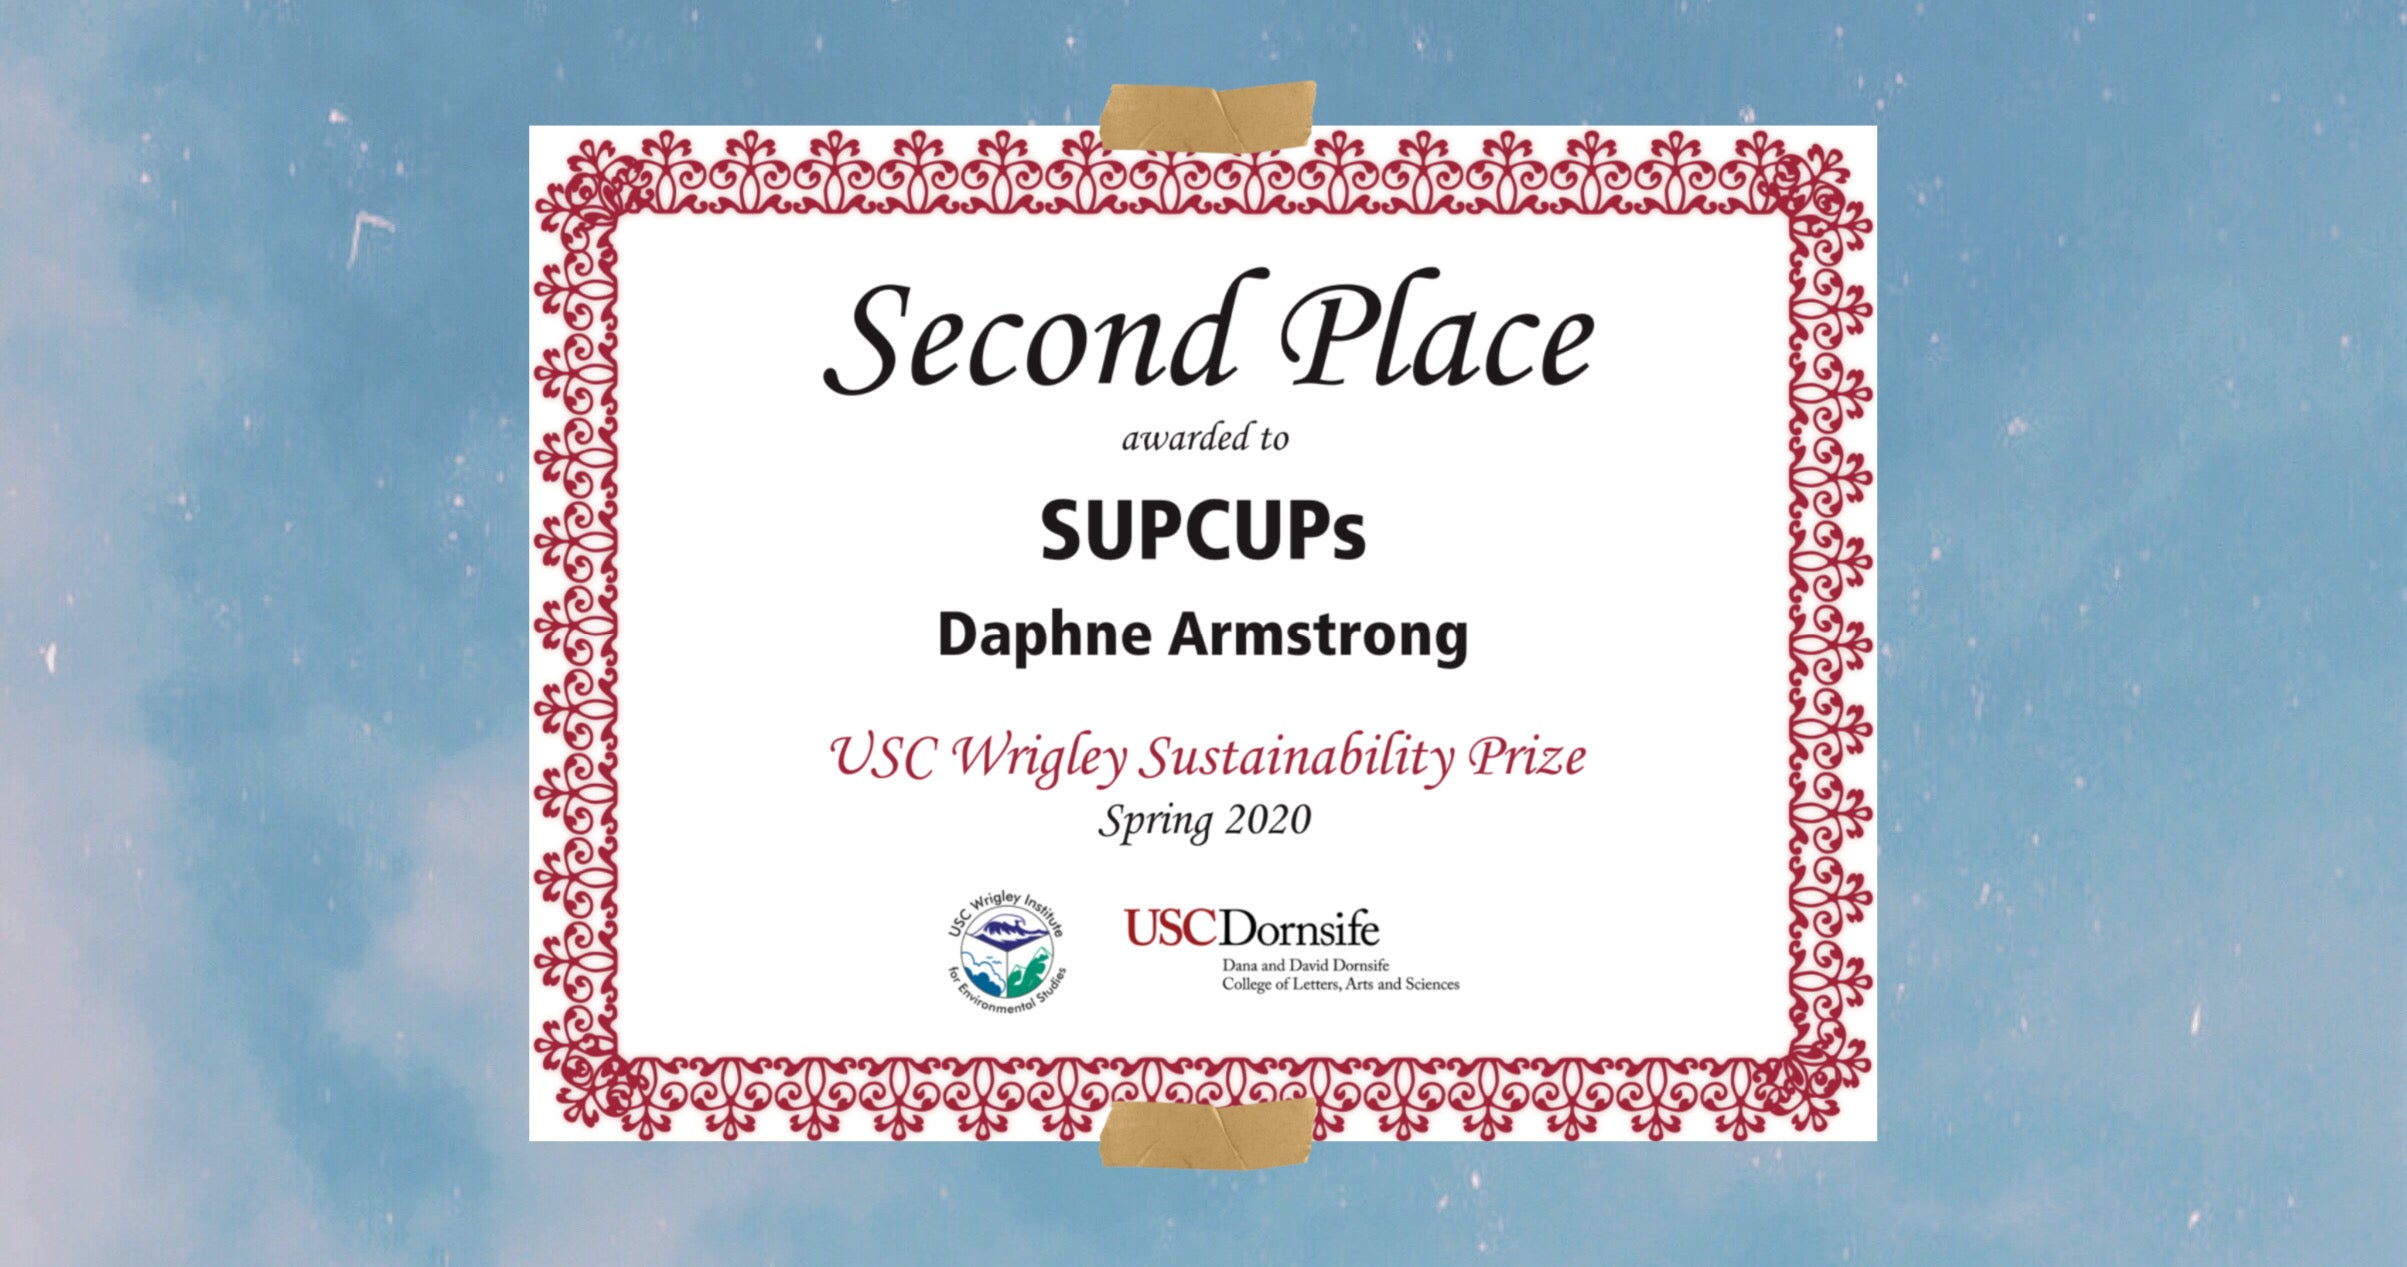 Certificate for USC wrigley sustainability prize